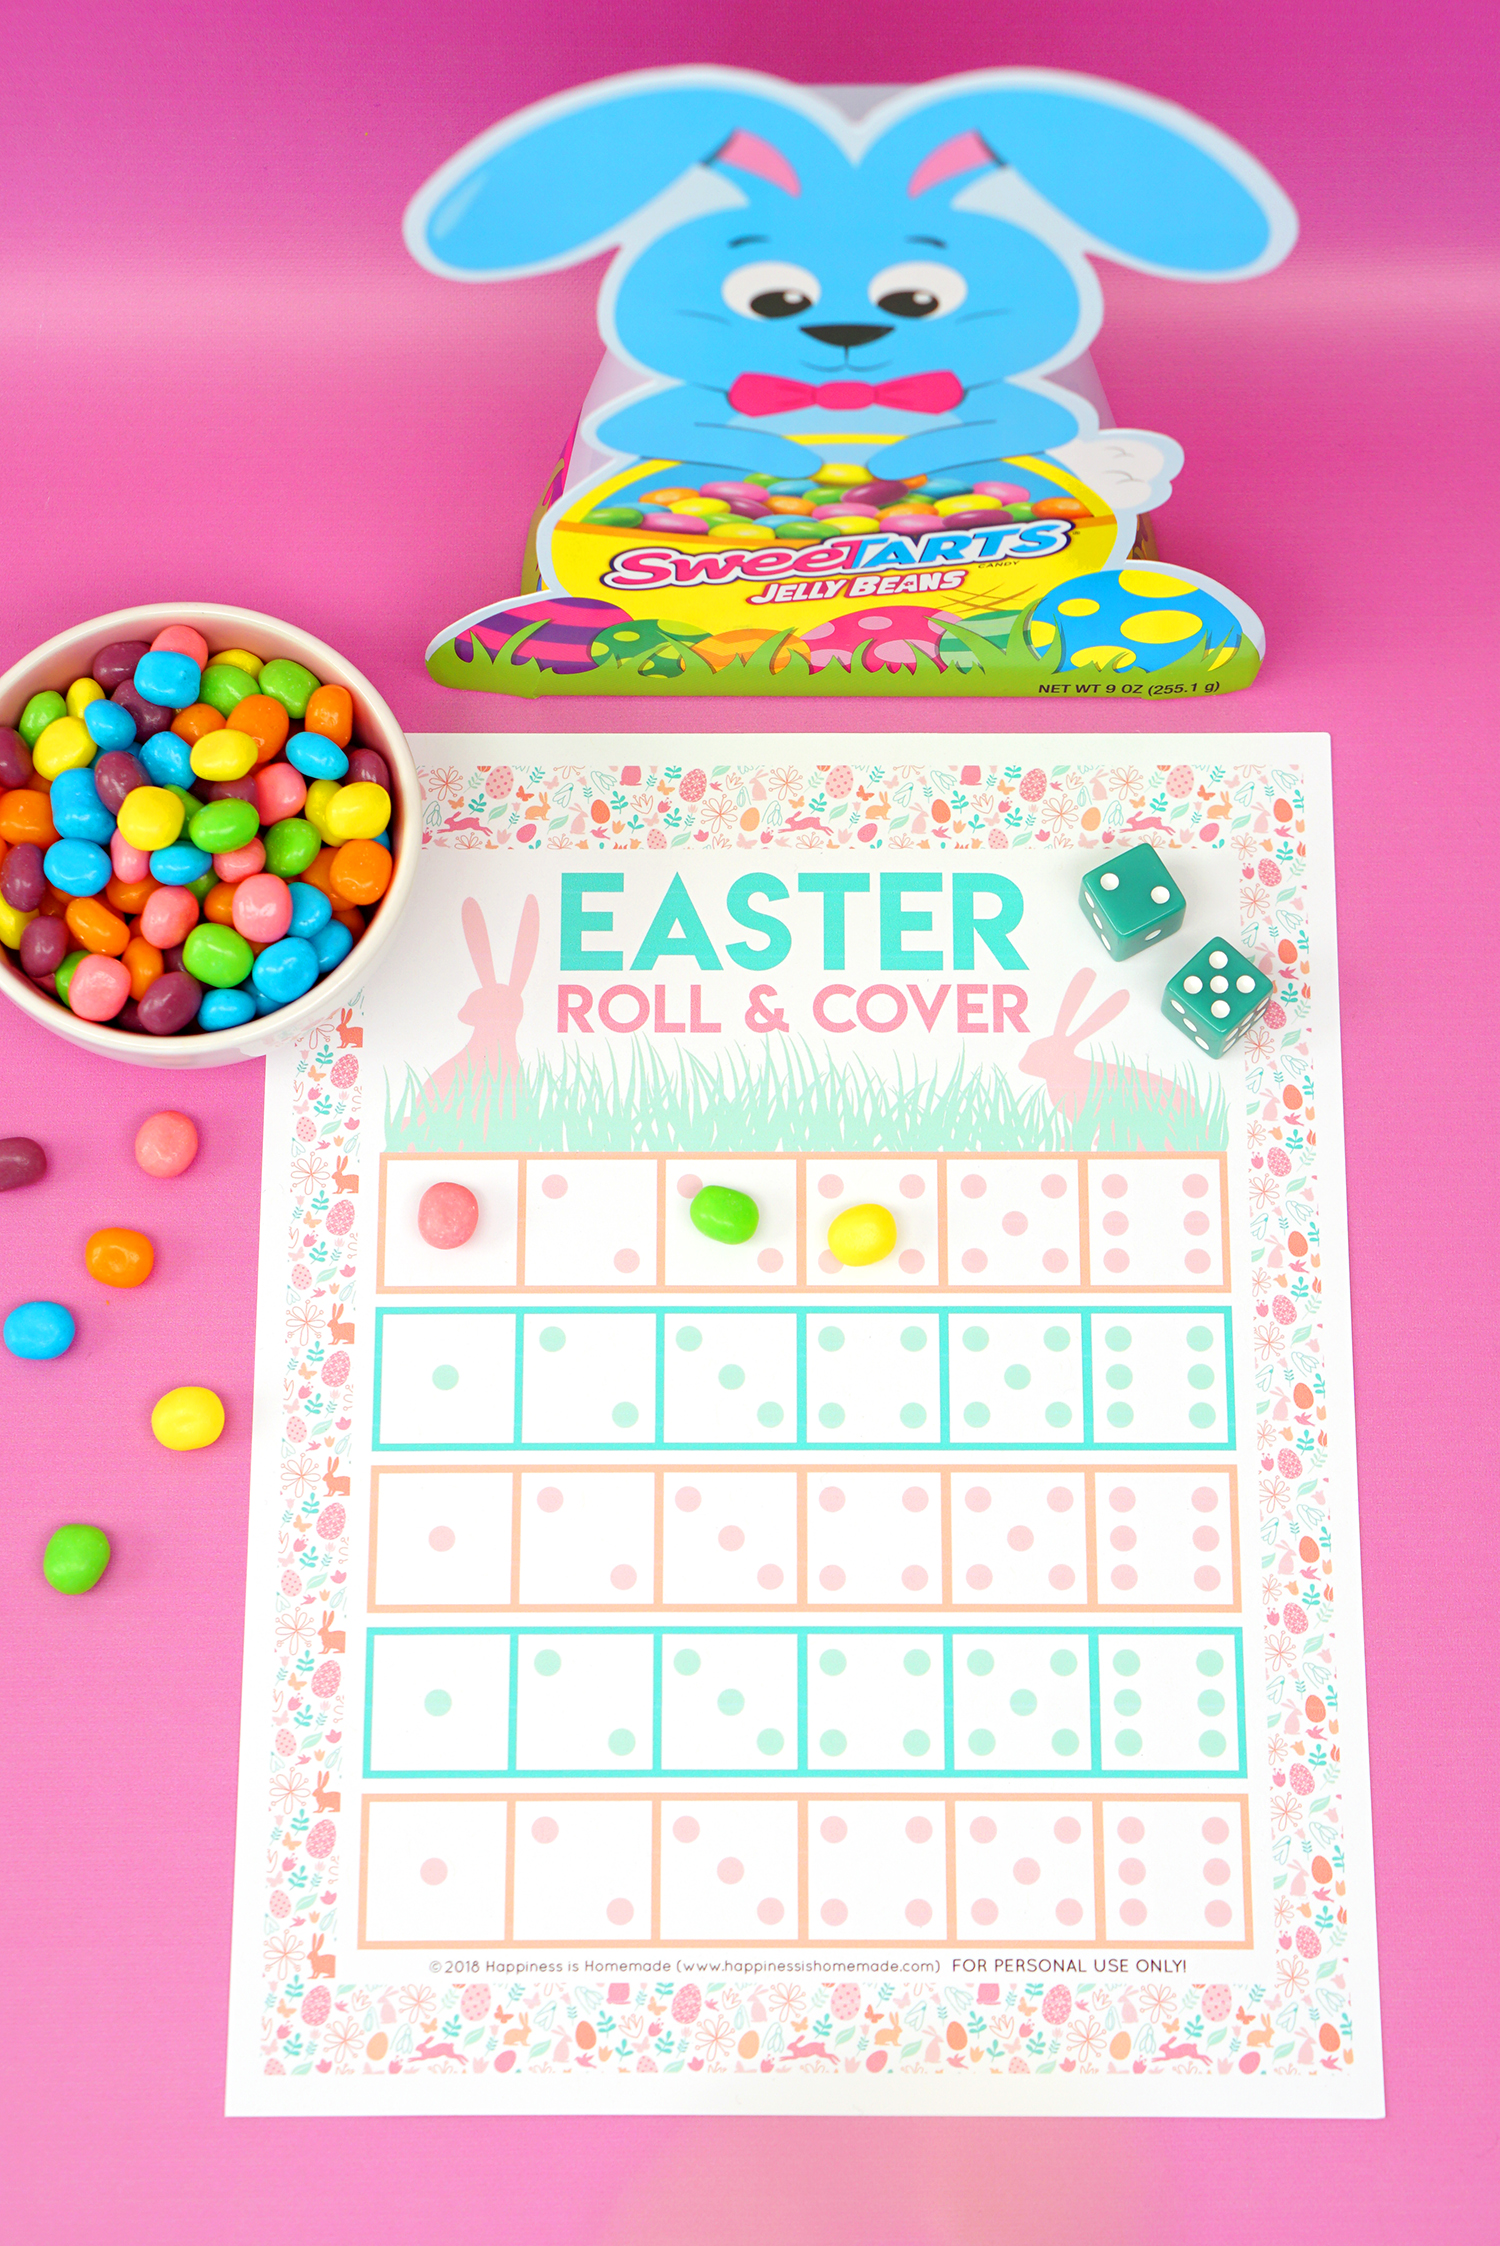 photo relating to Printable Easter Games named Roll Include Printable Easter Video game - Joy is Do-it-yourself